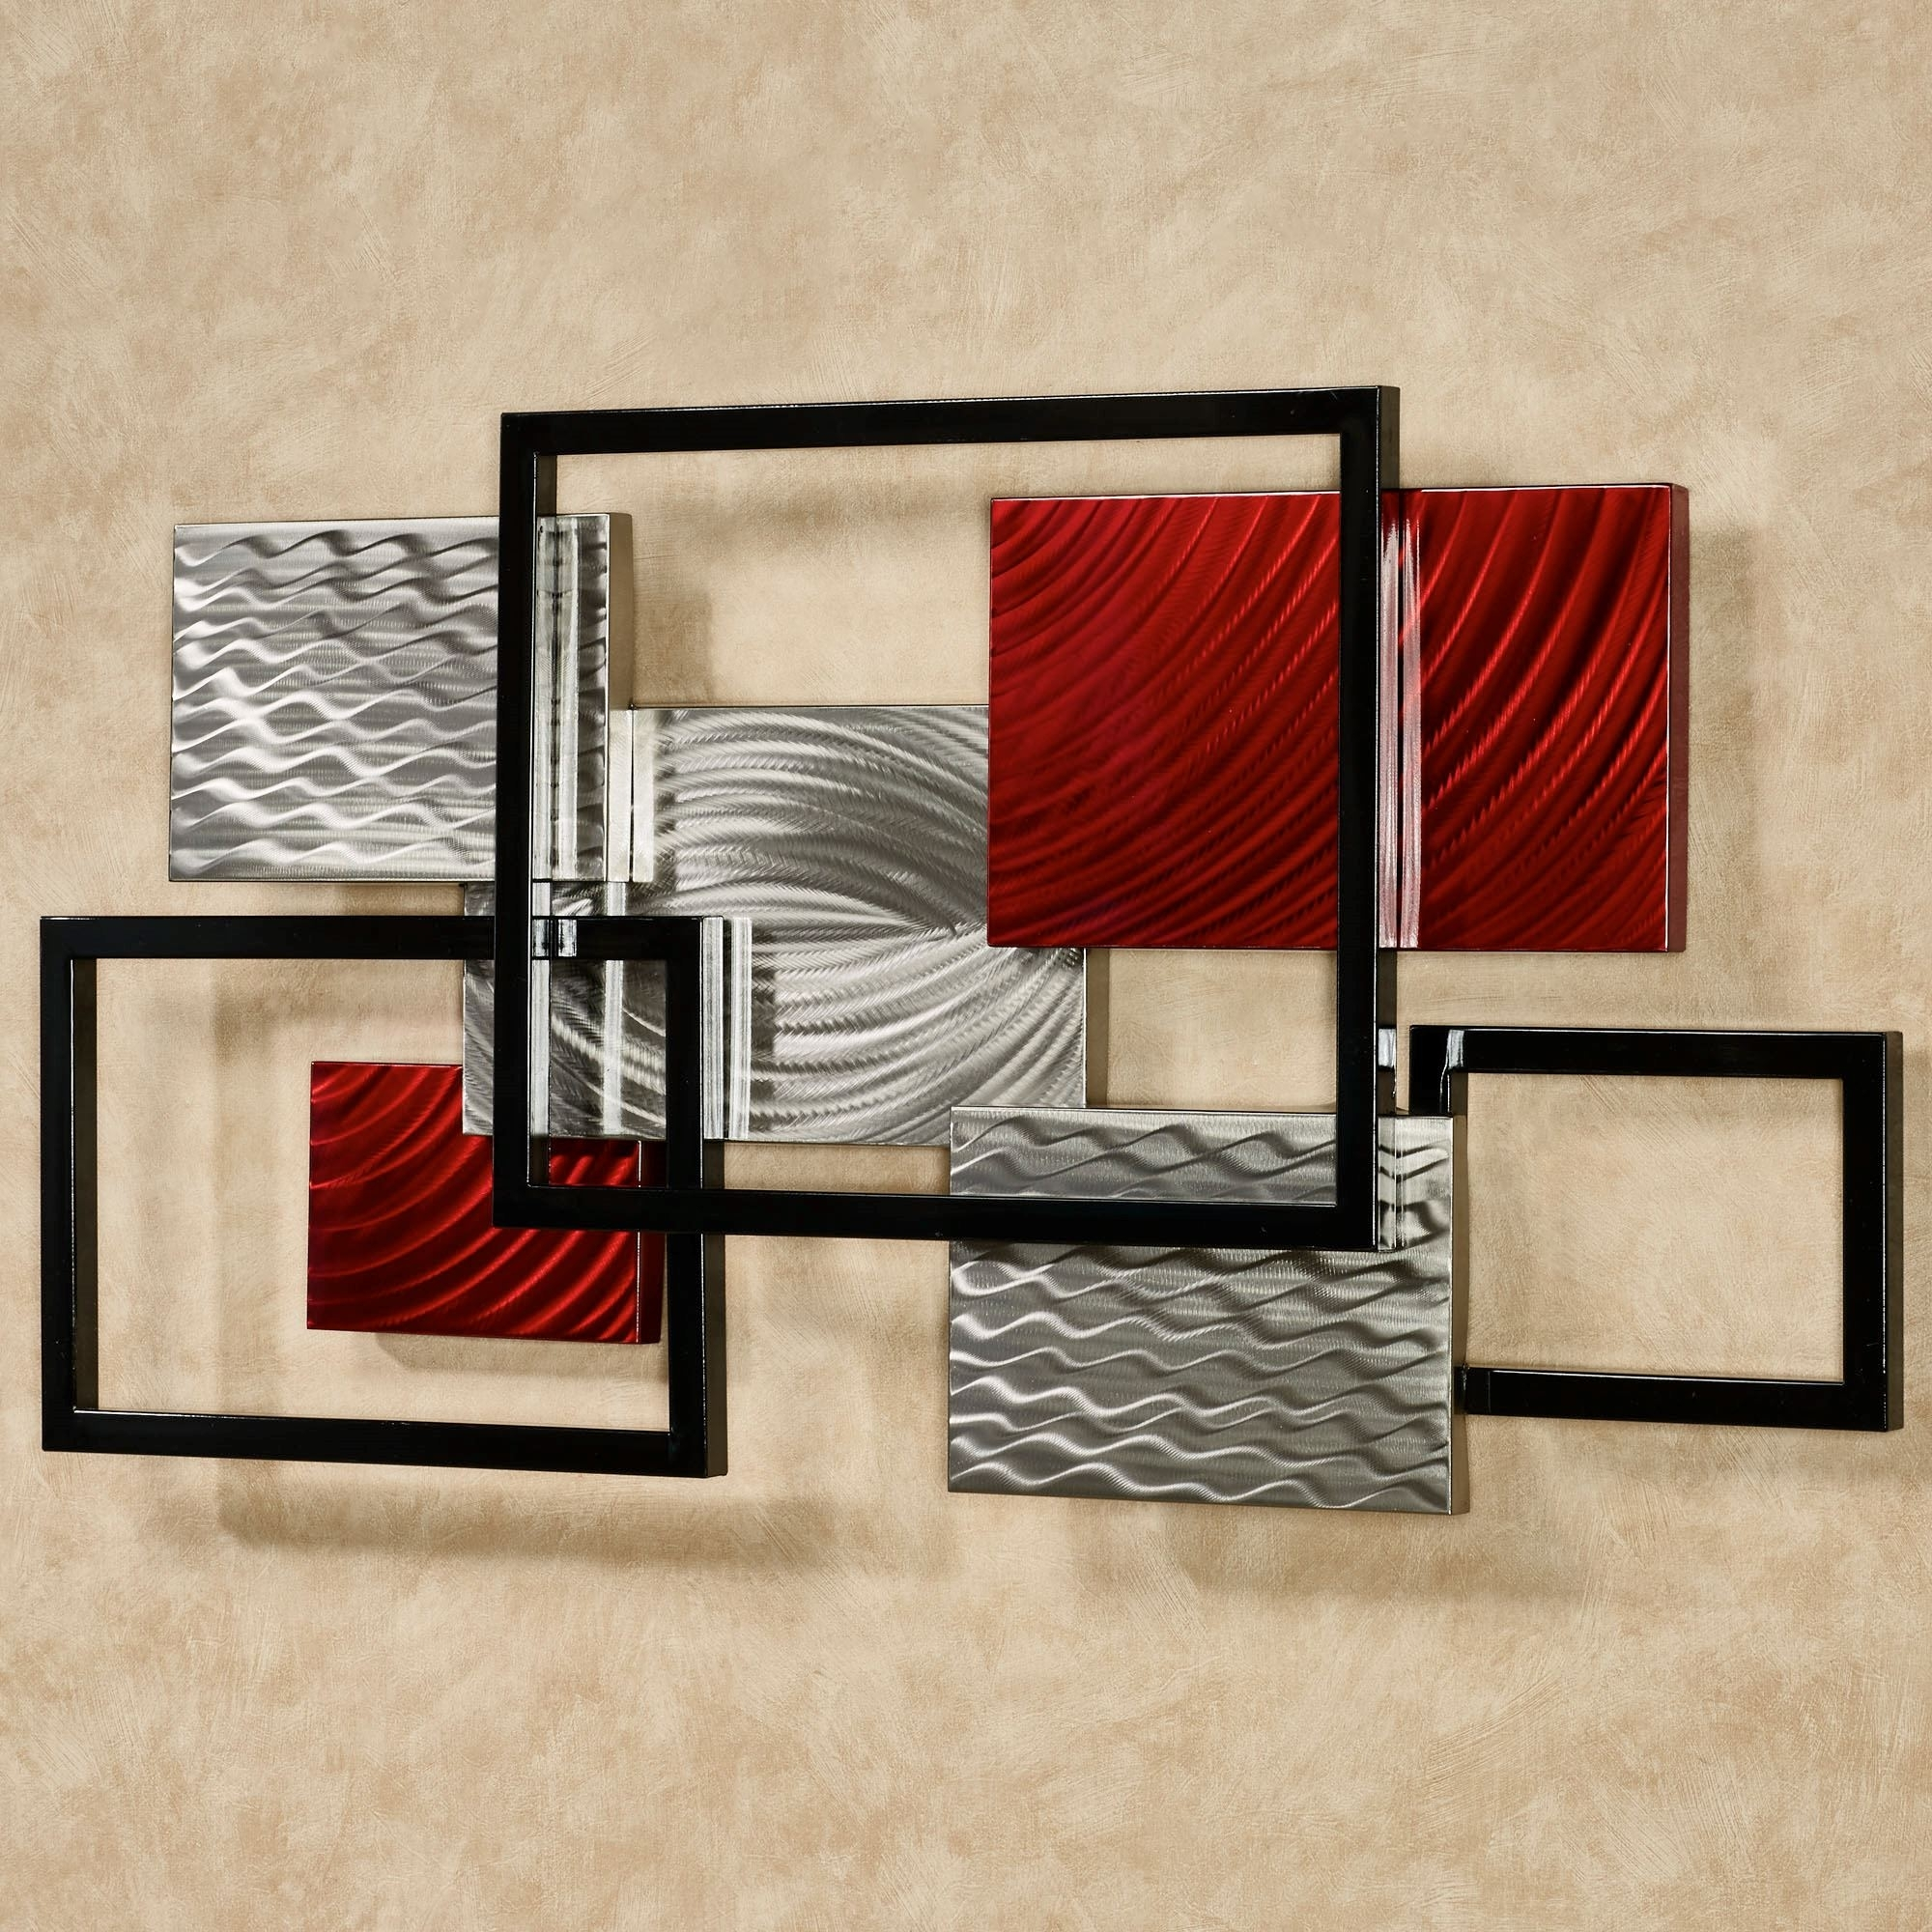 Framed Array Indoor Outdoor Abstract Metal Wall Sculpture Regarding Most Up To Date Abstract Iron Wall Art (View 9 of 20)